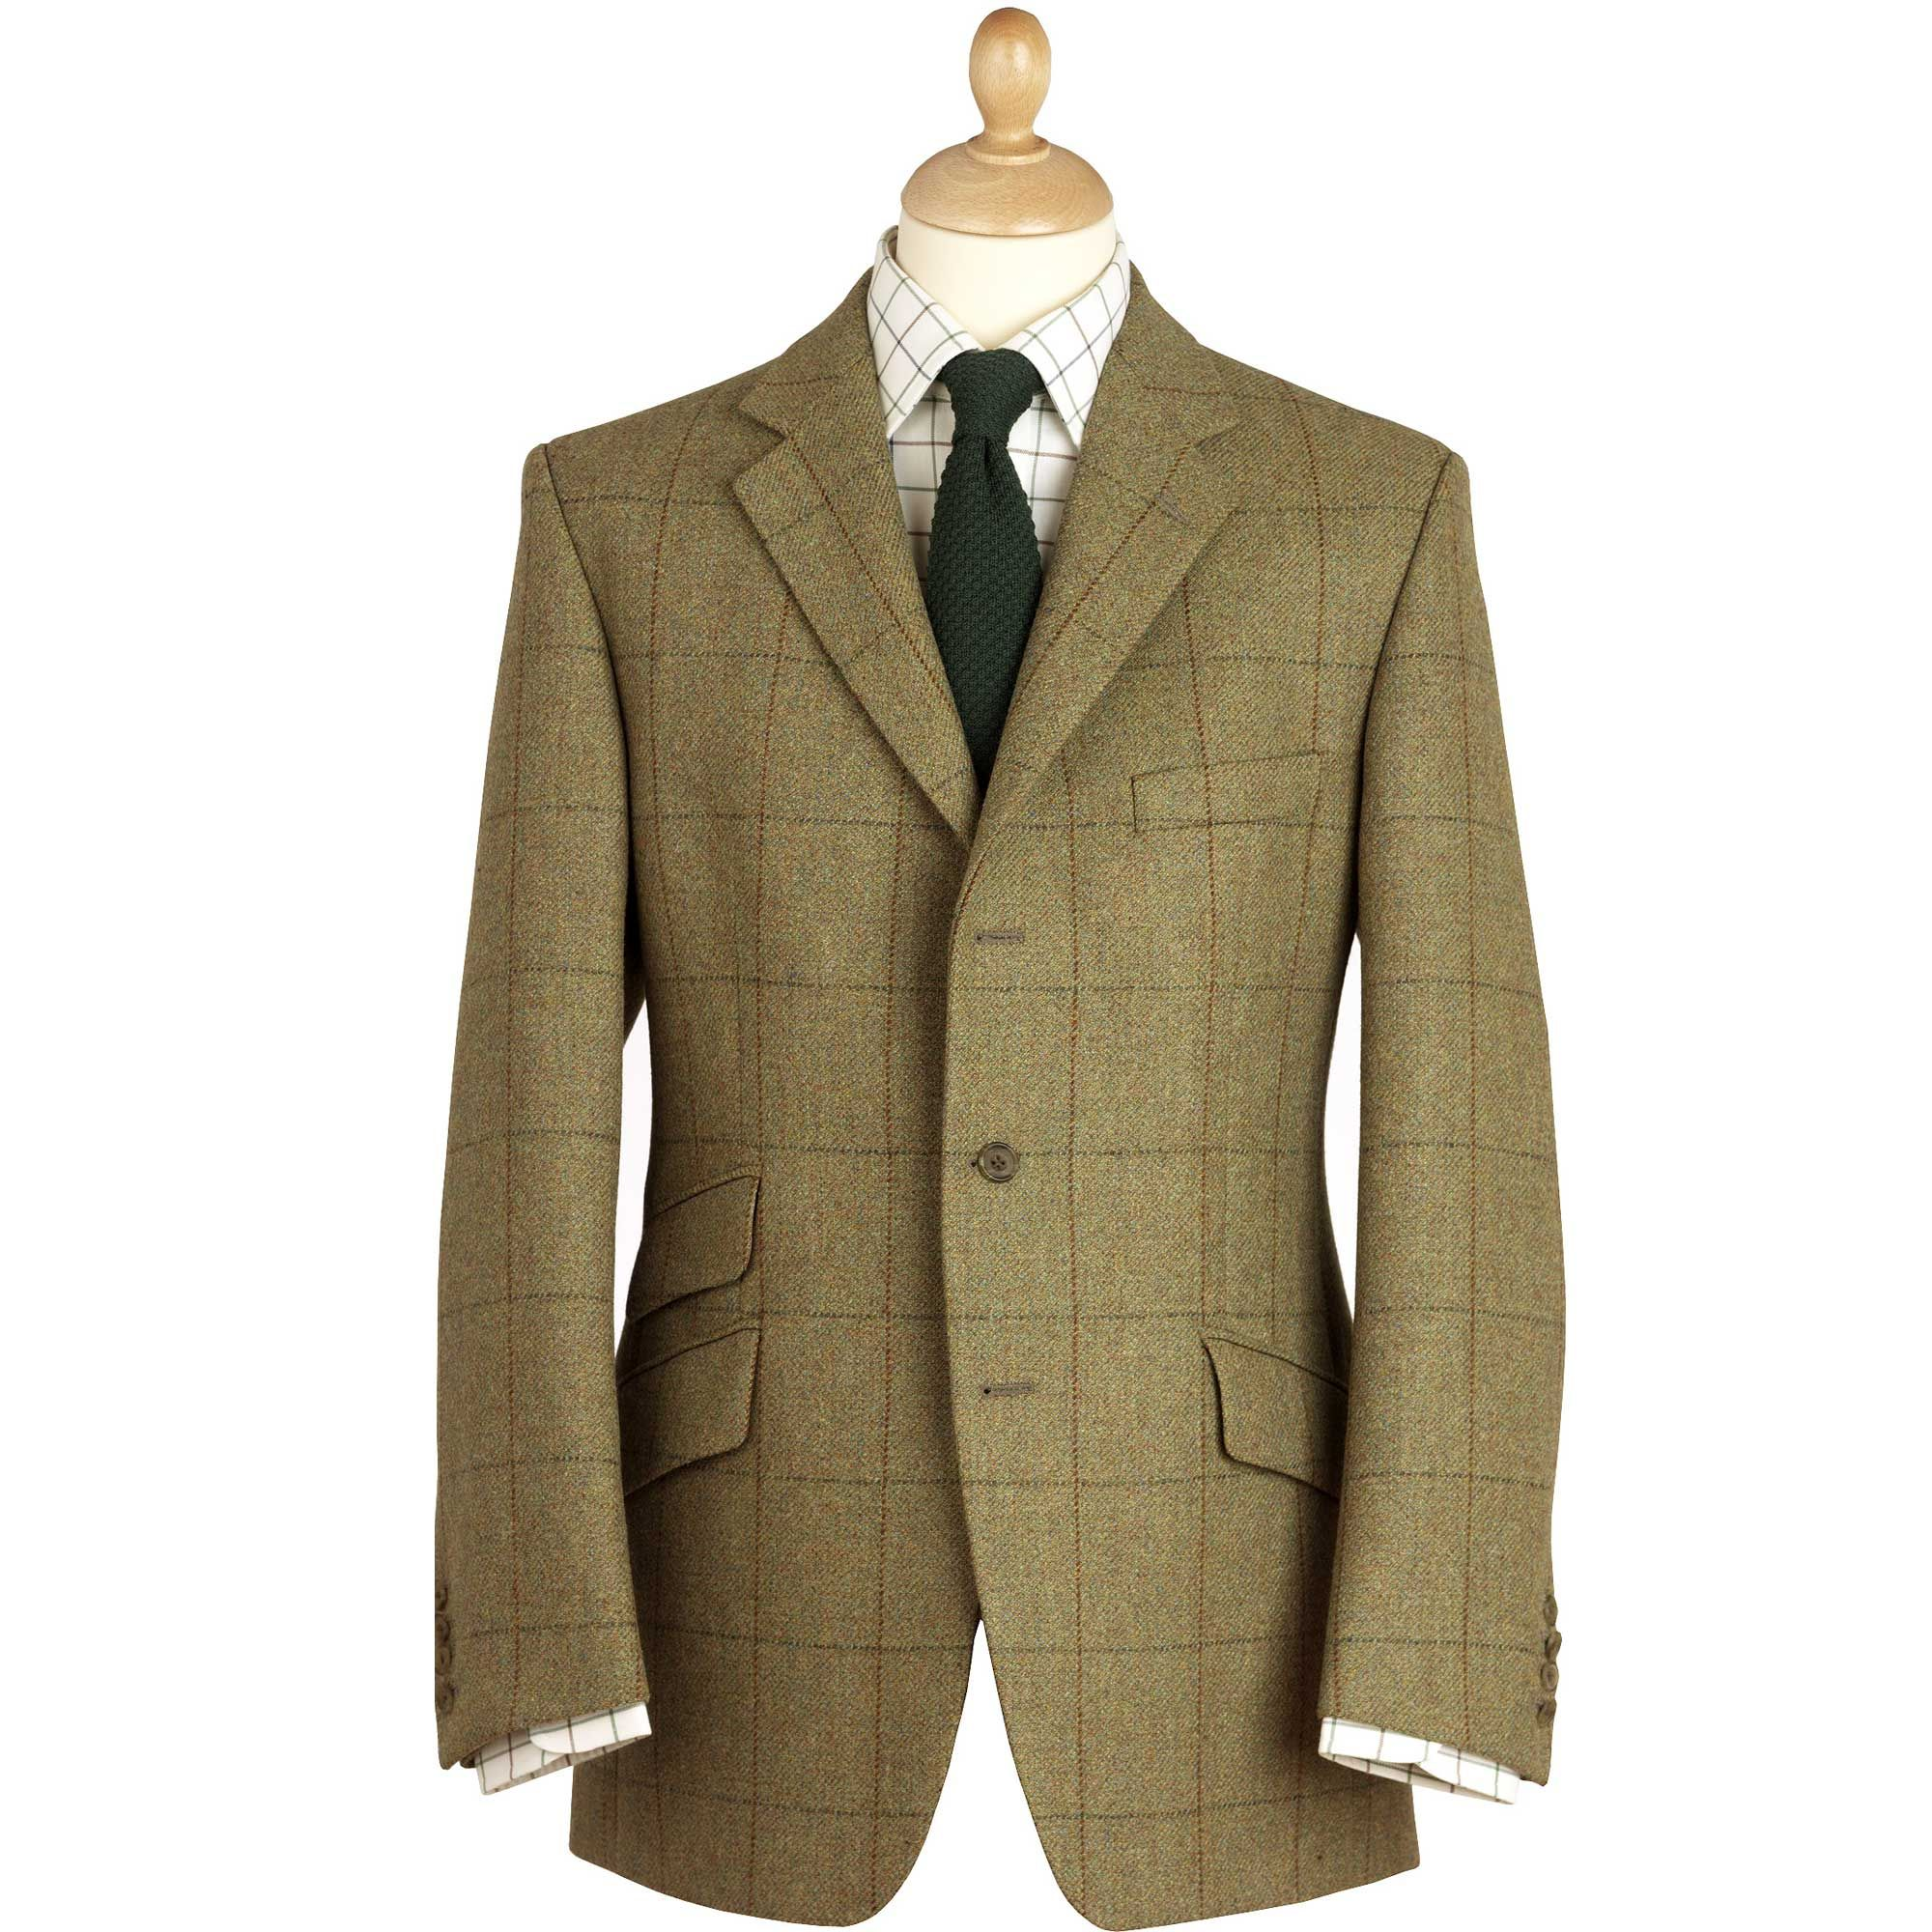 21oz Windowpane Tweed Jacket Men S Country Clothing Cordings